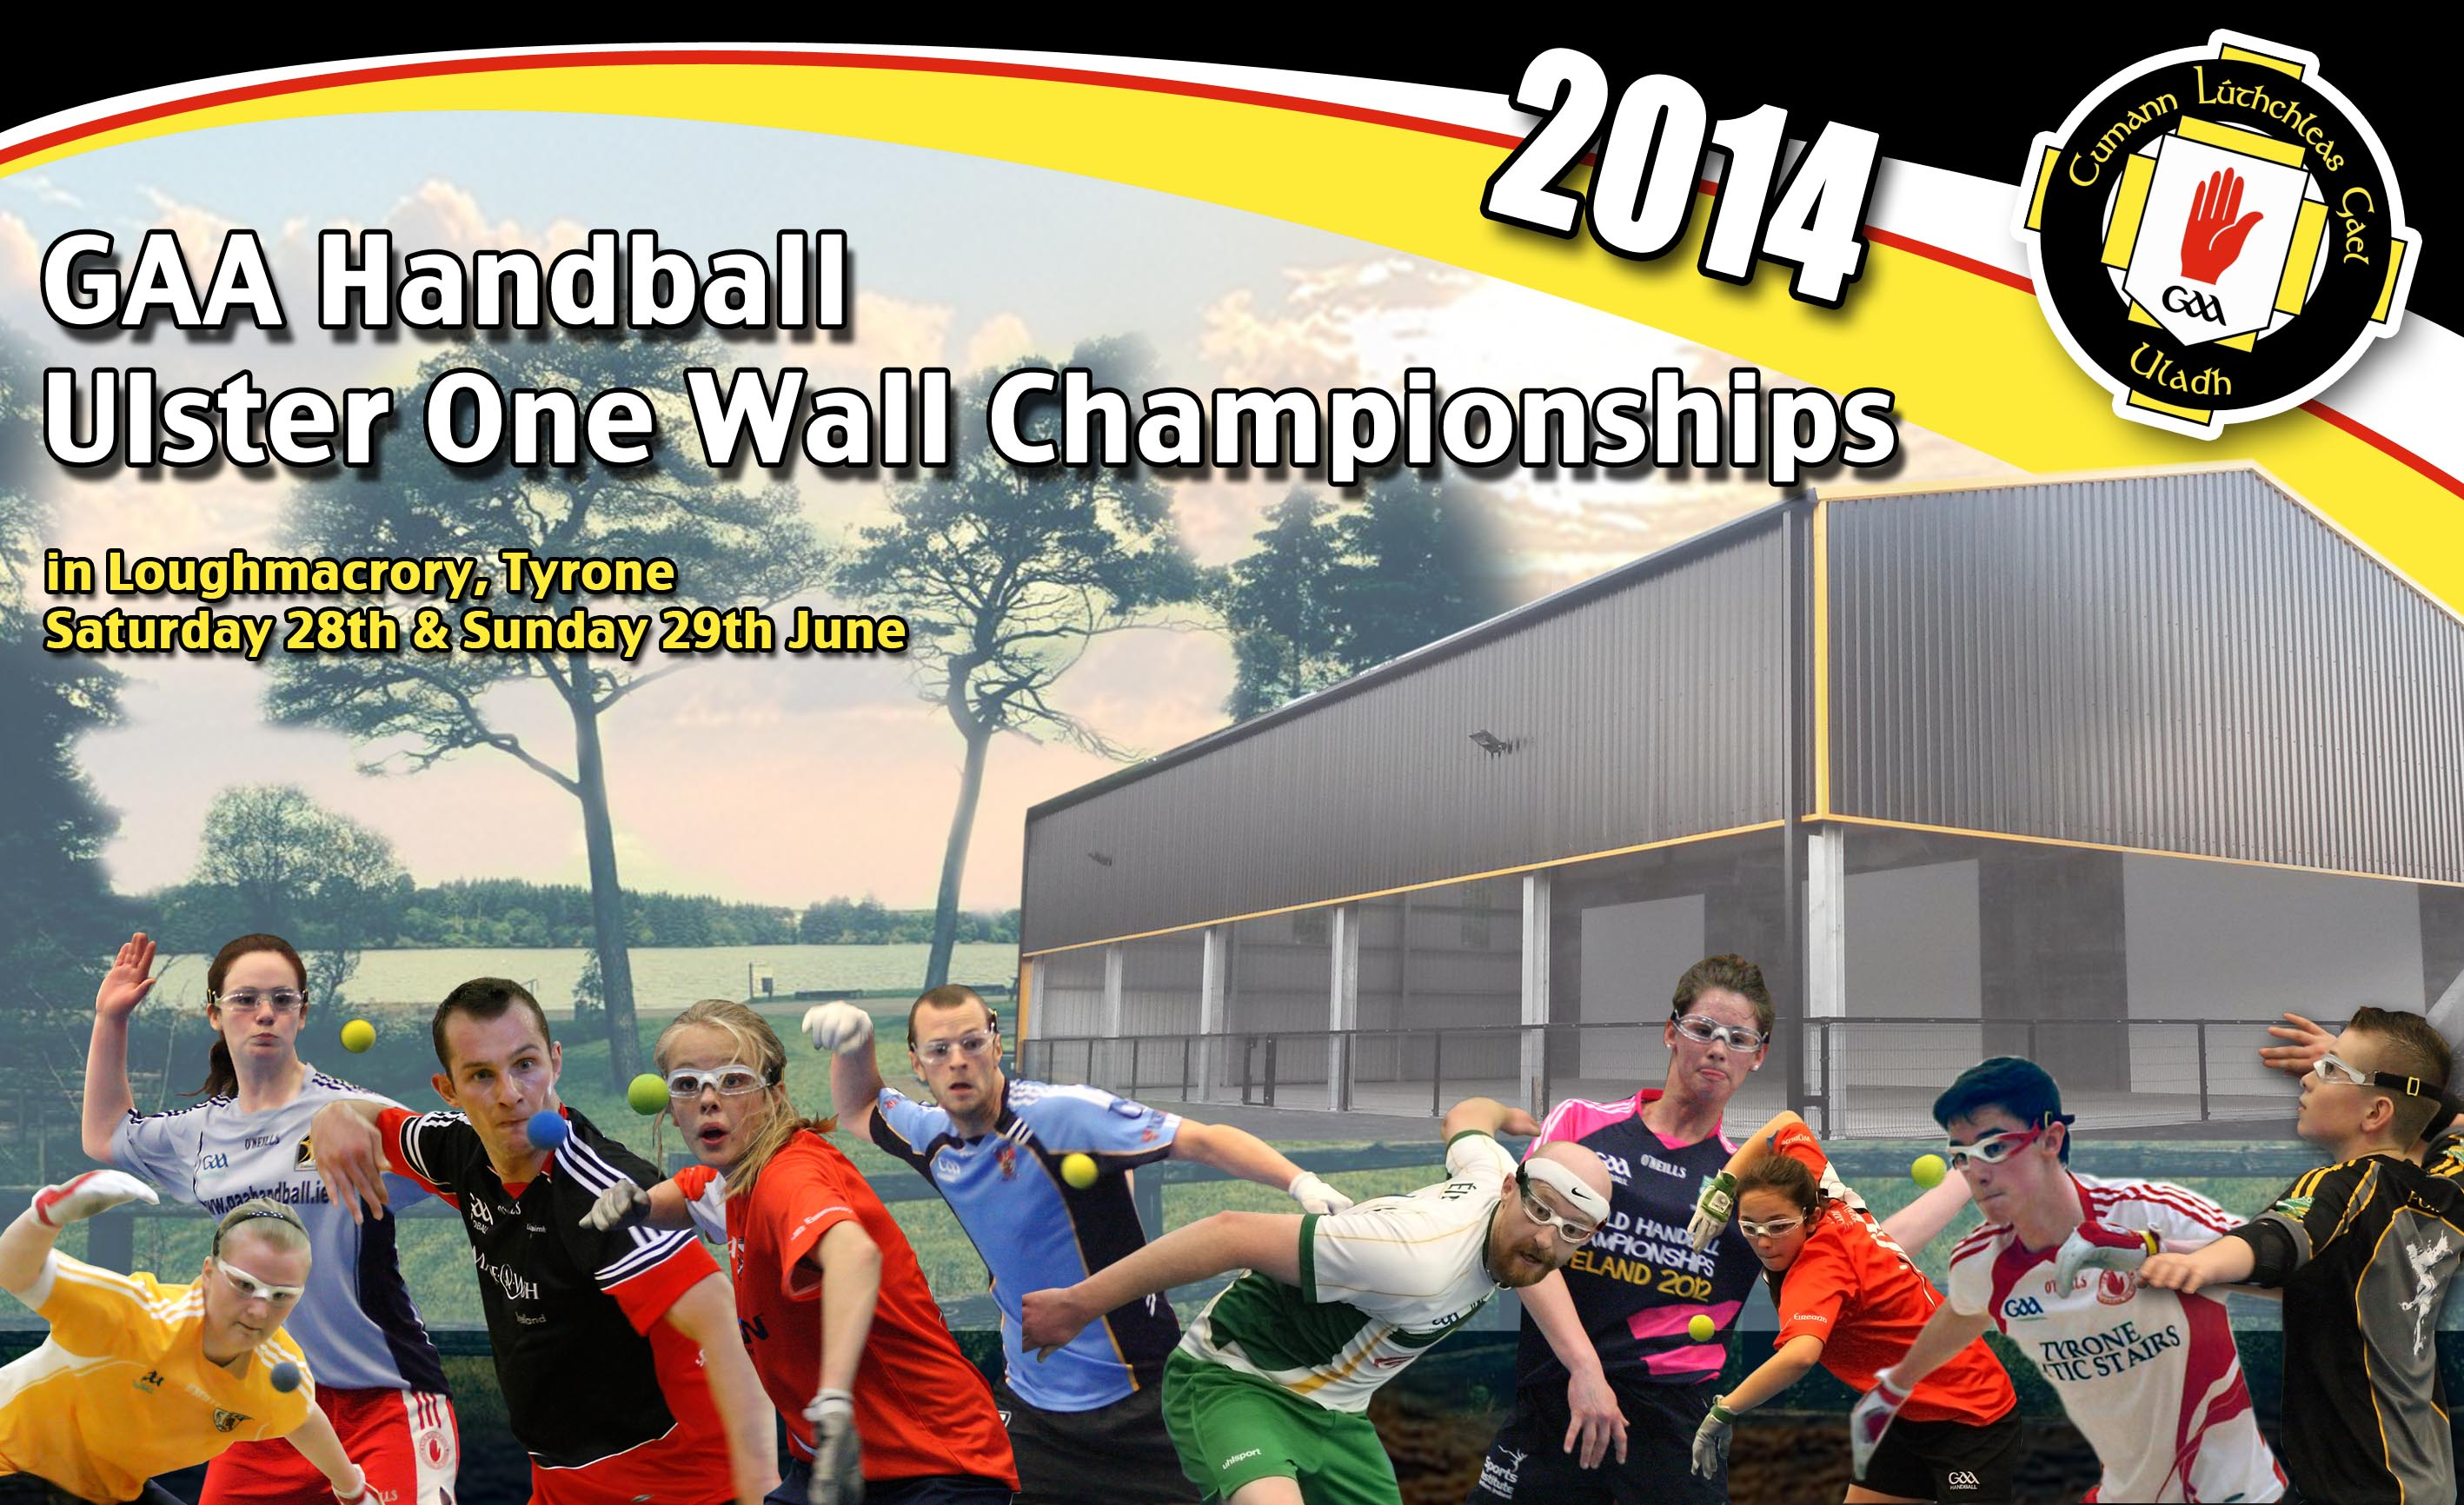 Ulster One Wall Championship Tournament in Loughmacrory